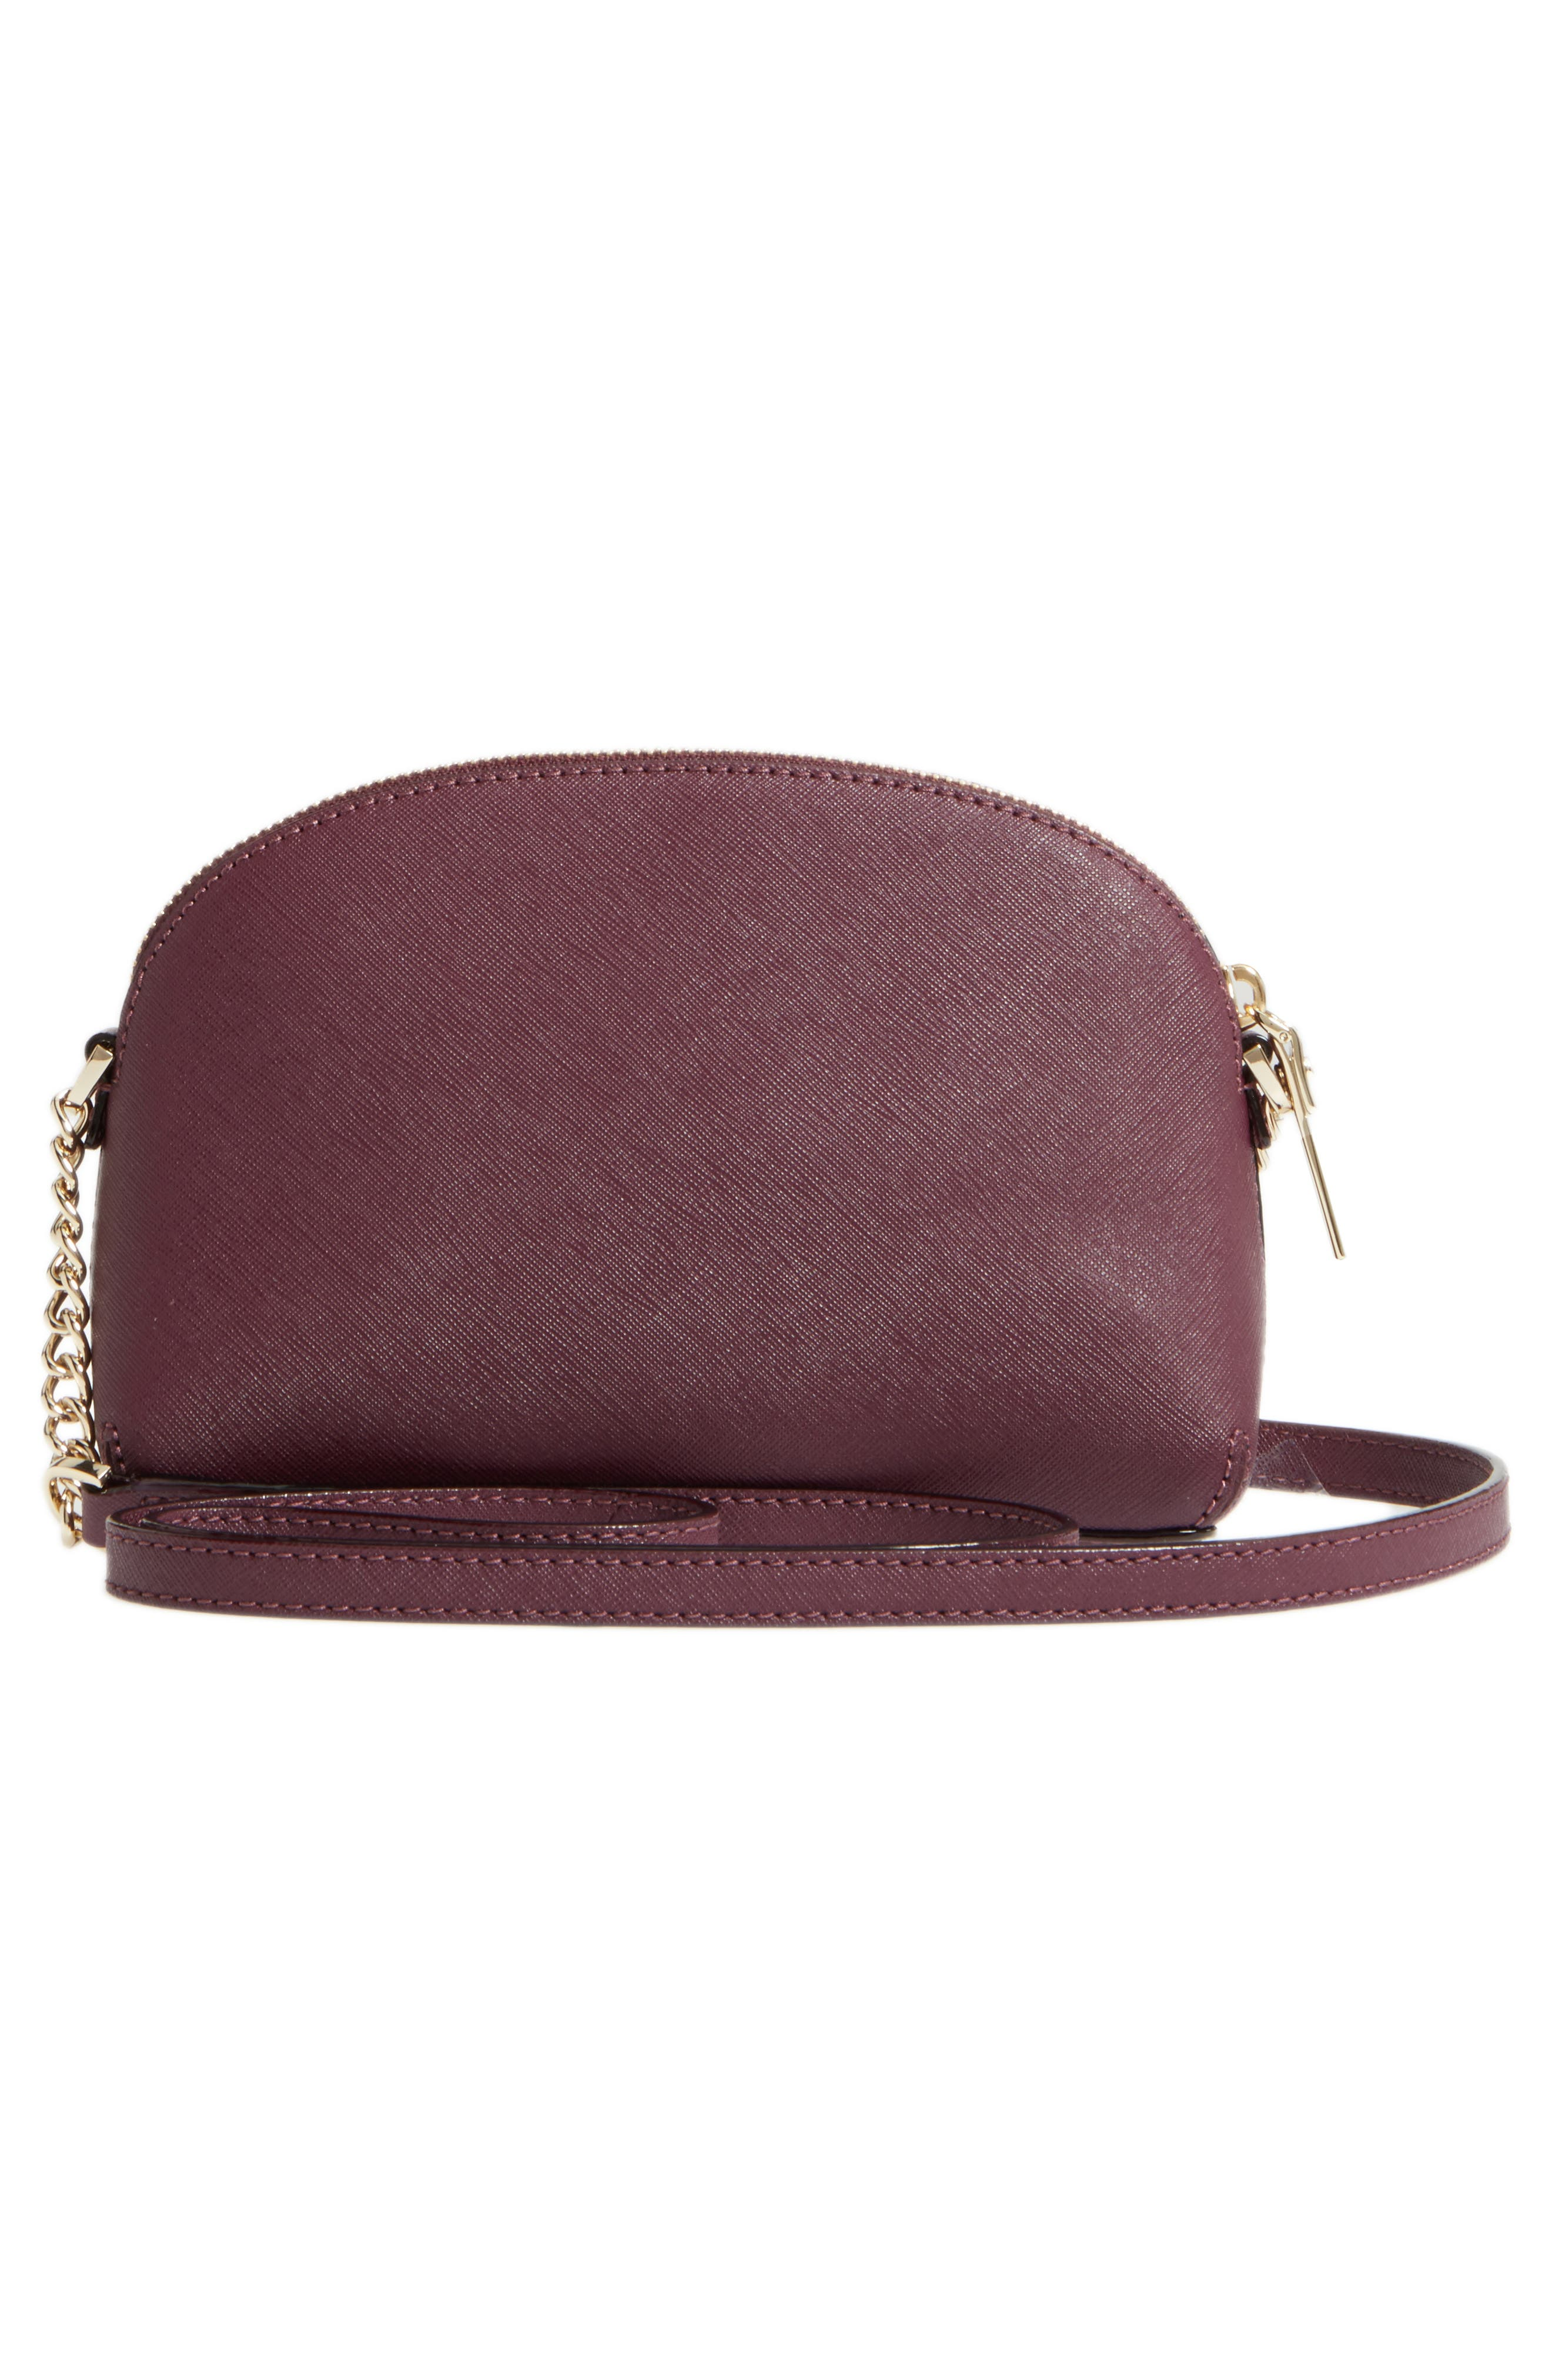 Alternate Image 3  - kate spade new york cameron street - hilli leather crossbody bag